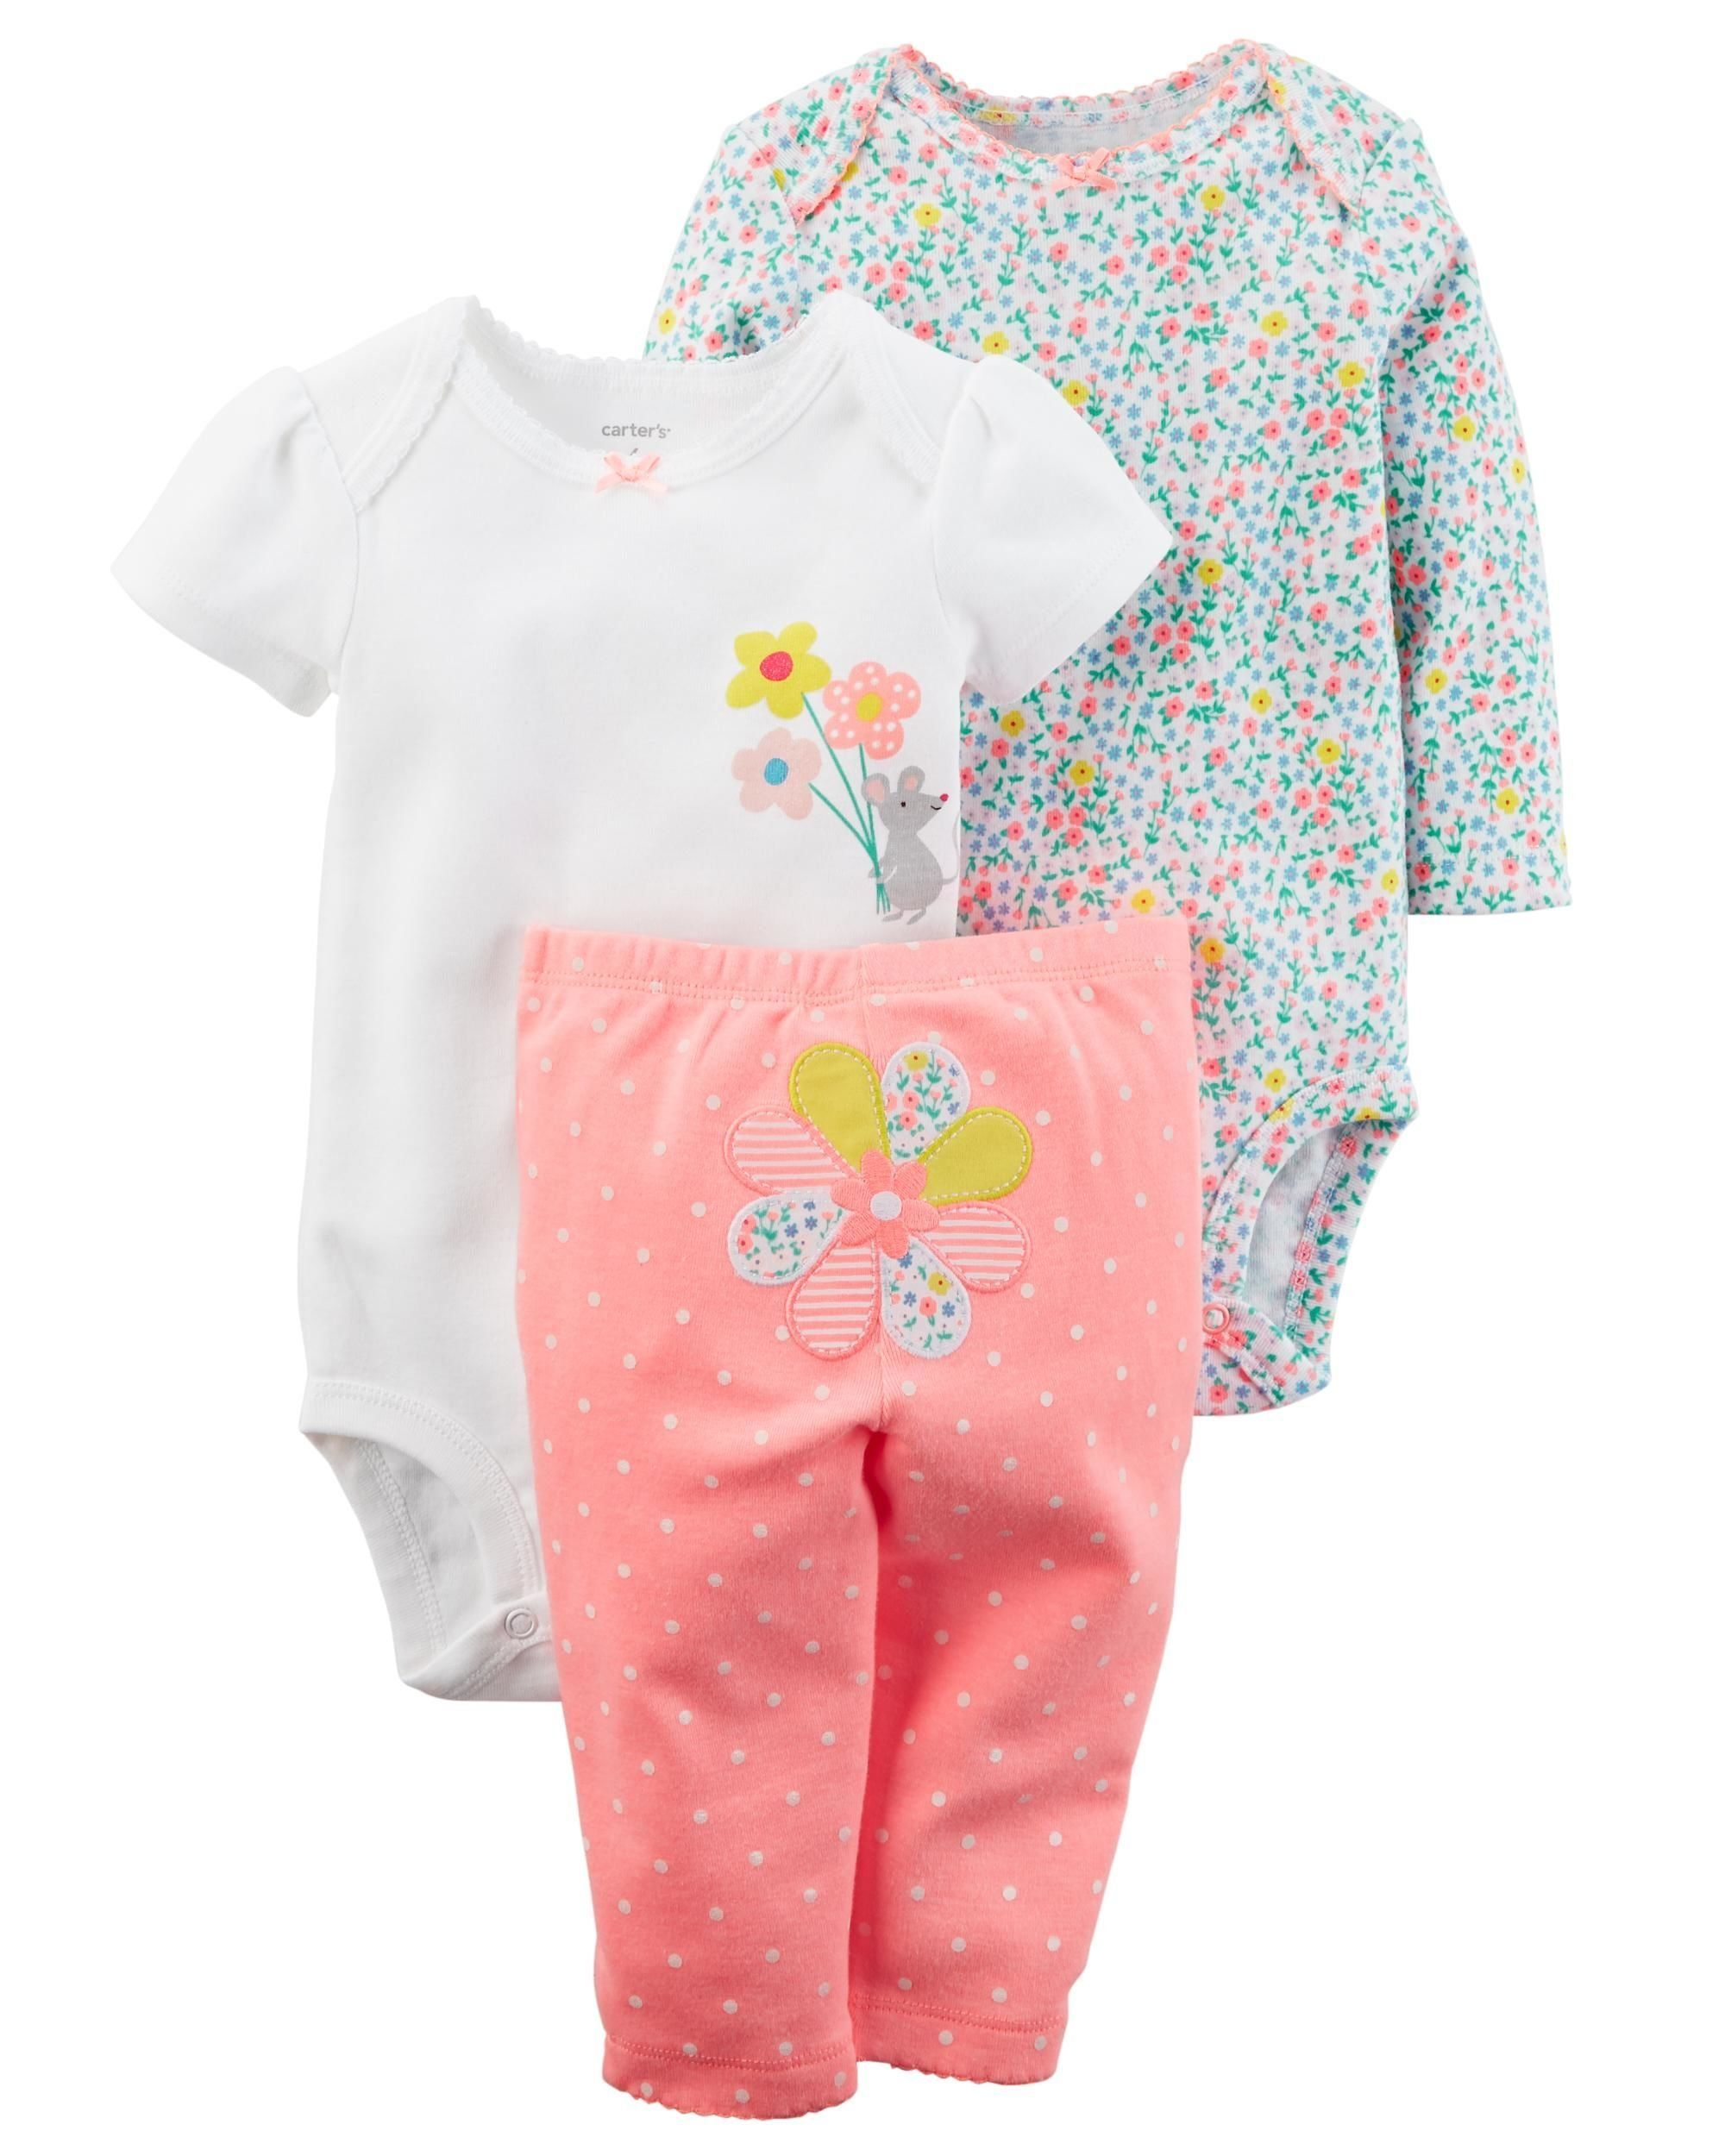 Dress Easter baby girl Outfit Newborn Easter bunny Dress Easter bunny Girls Outfit Girls Toddler Easter set rainbow bunny outfit